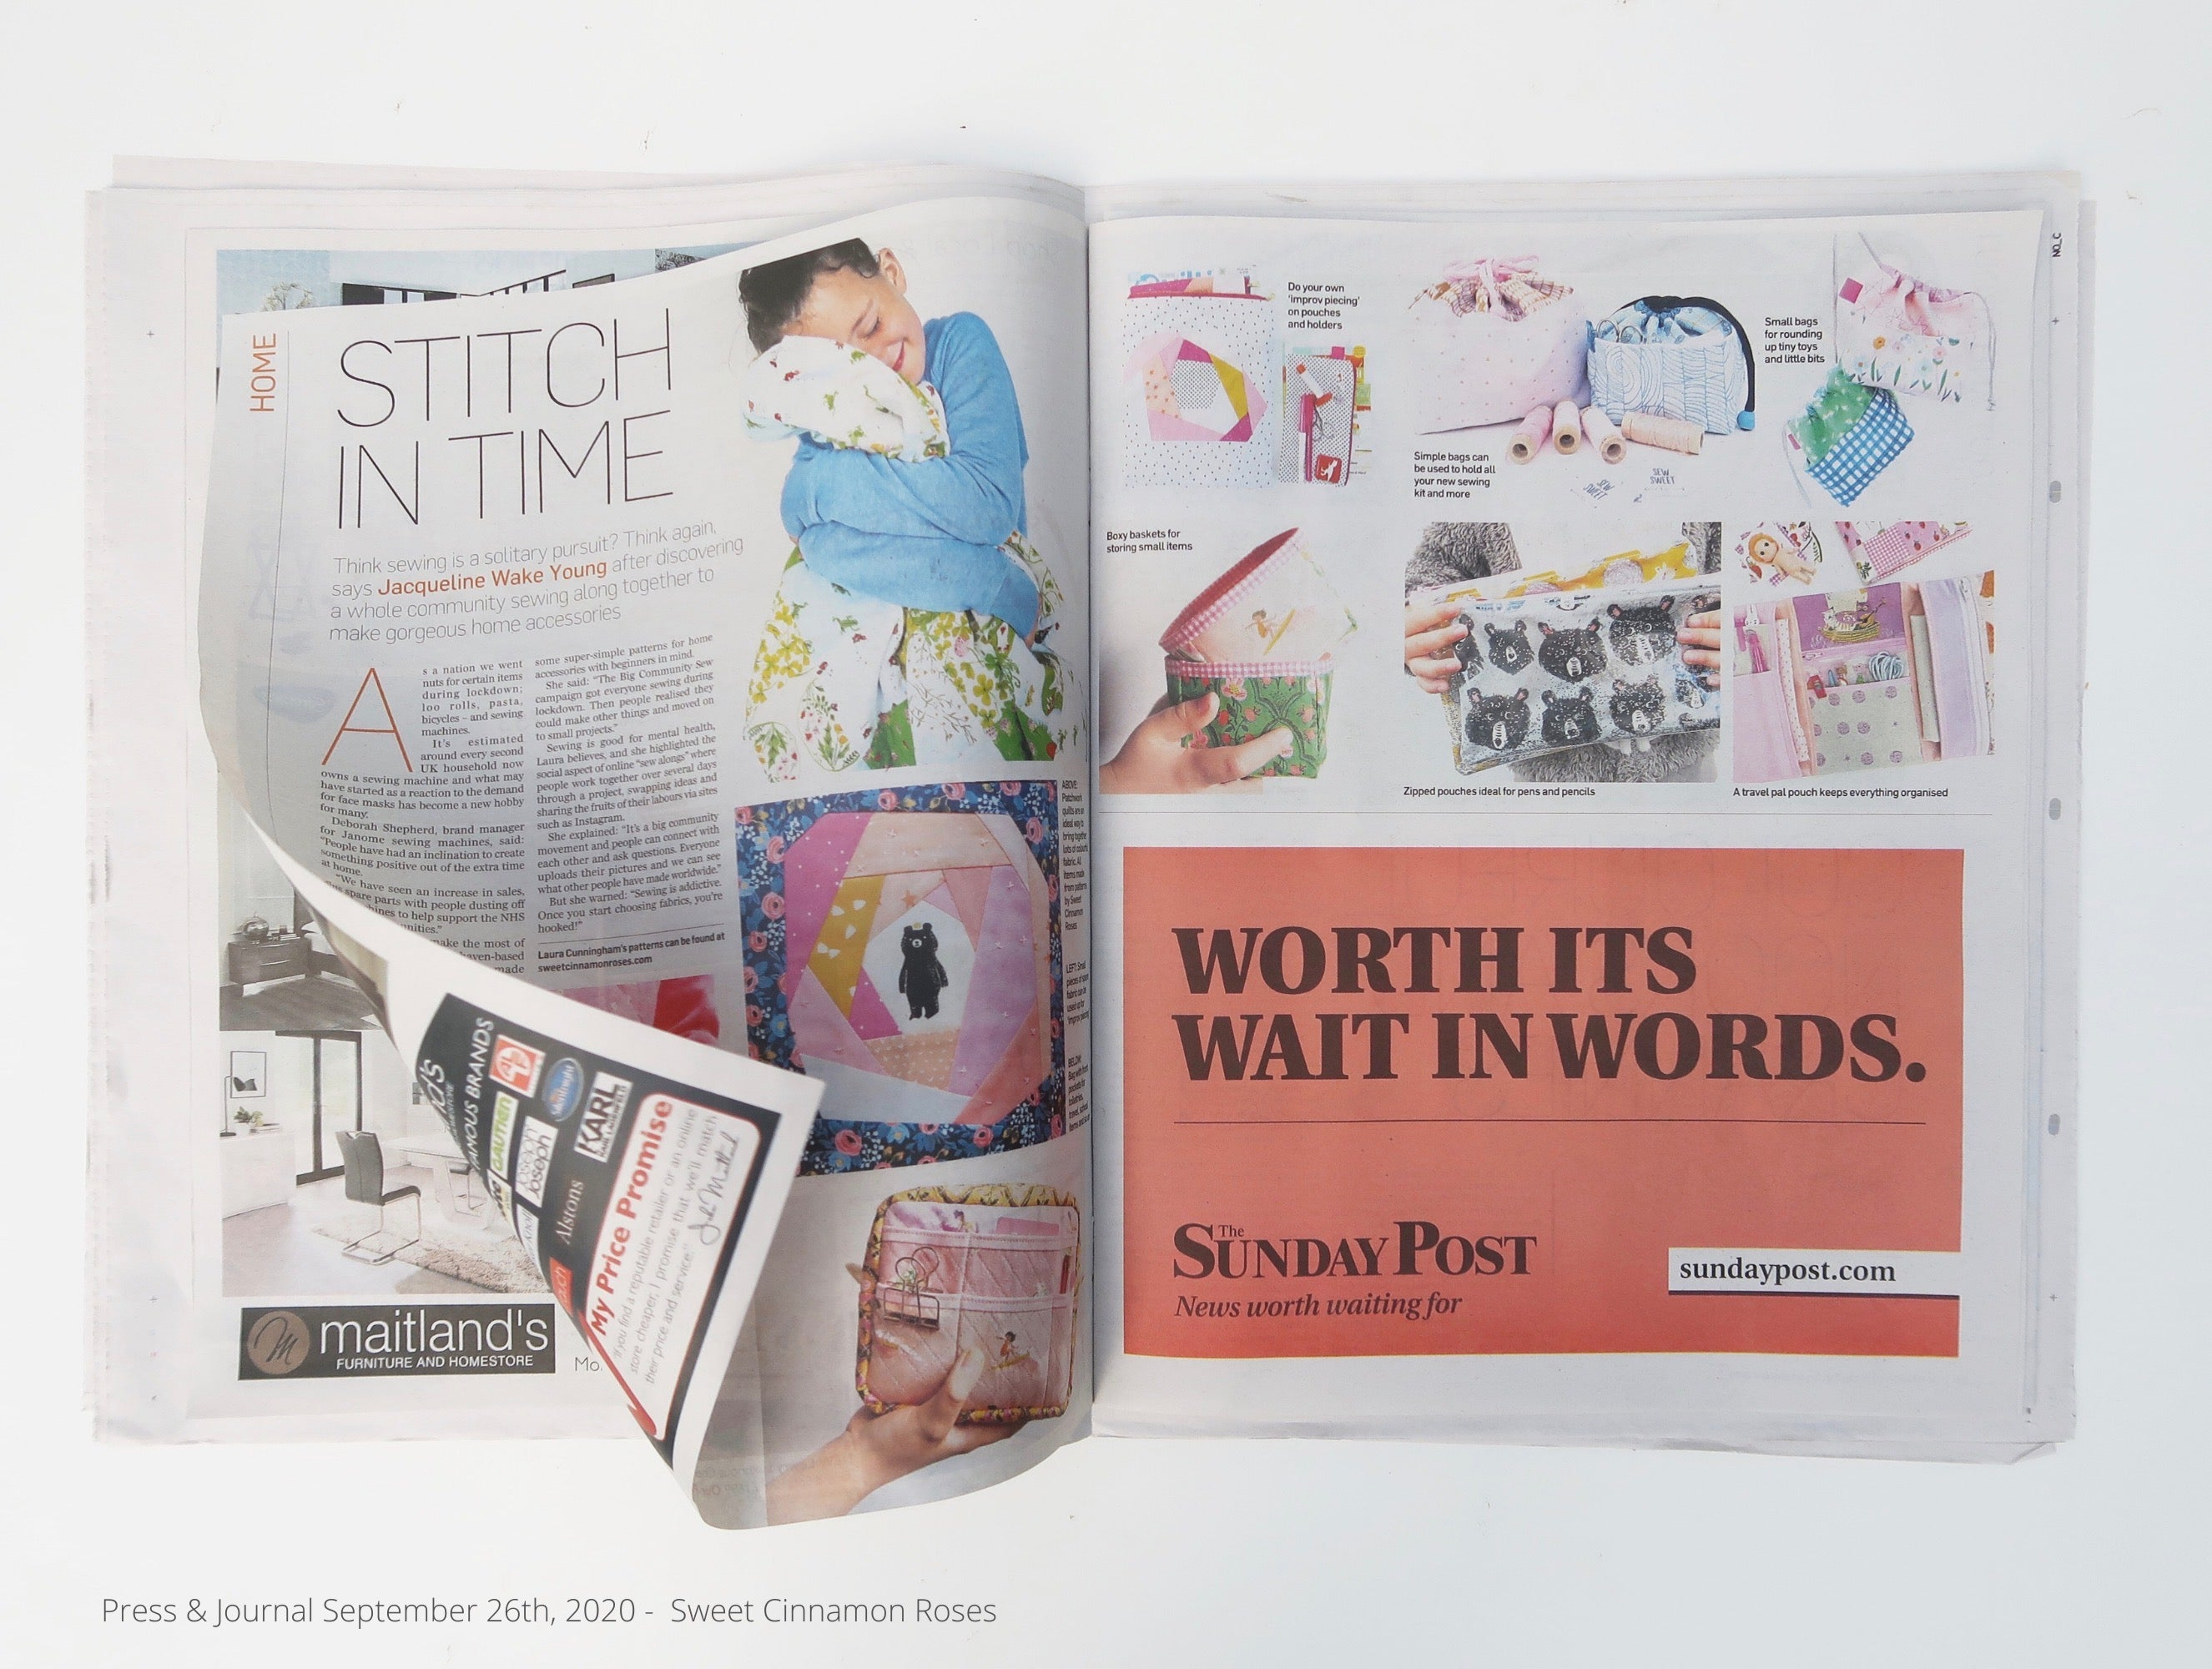 Sweet Cinnamon Roses in the Press and Journal